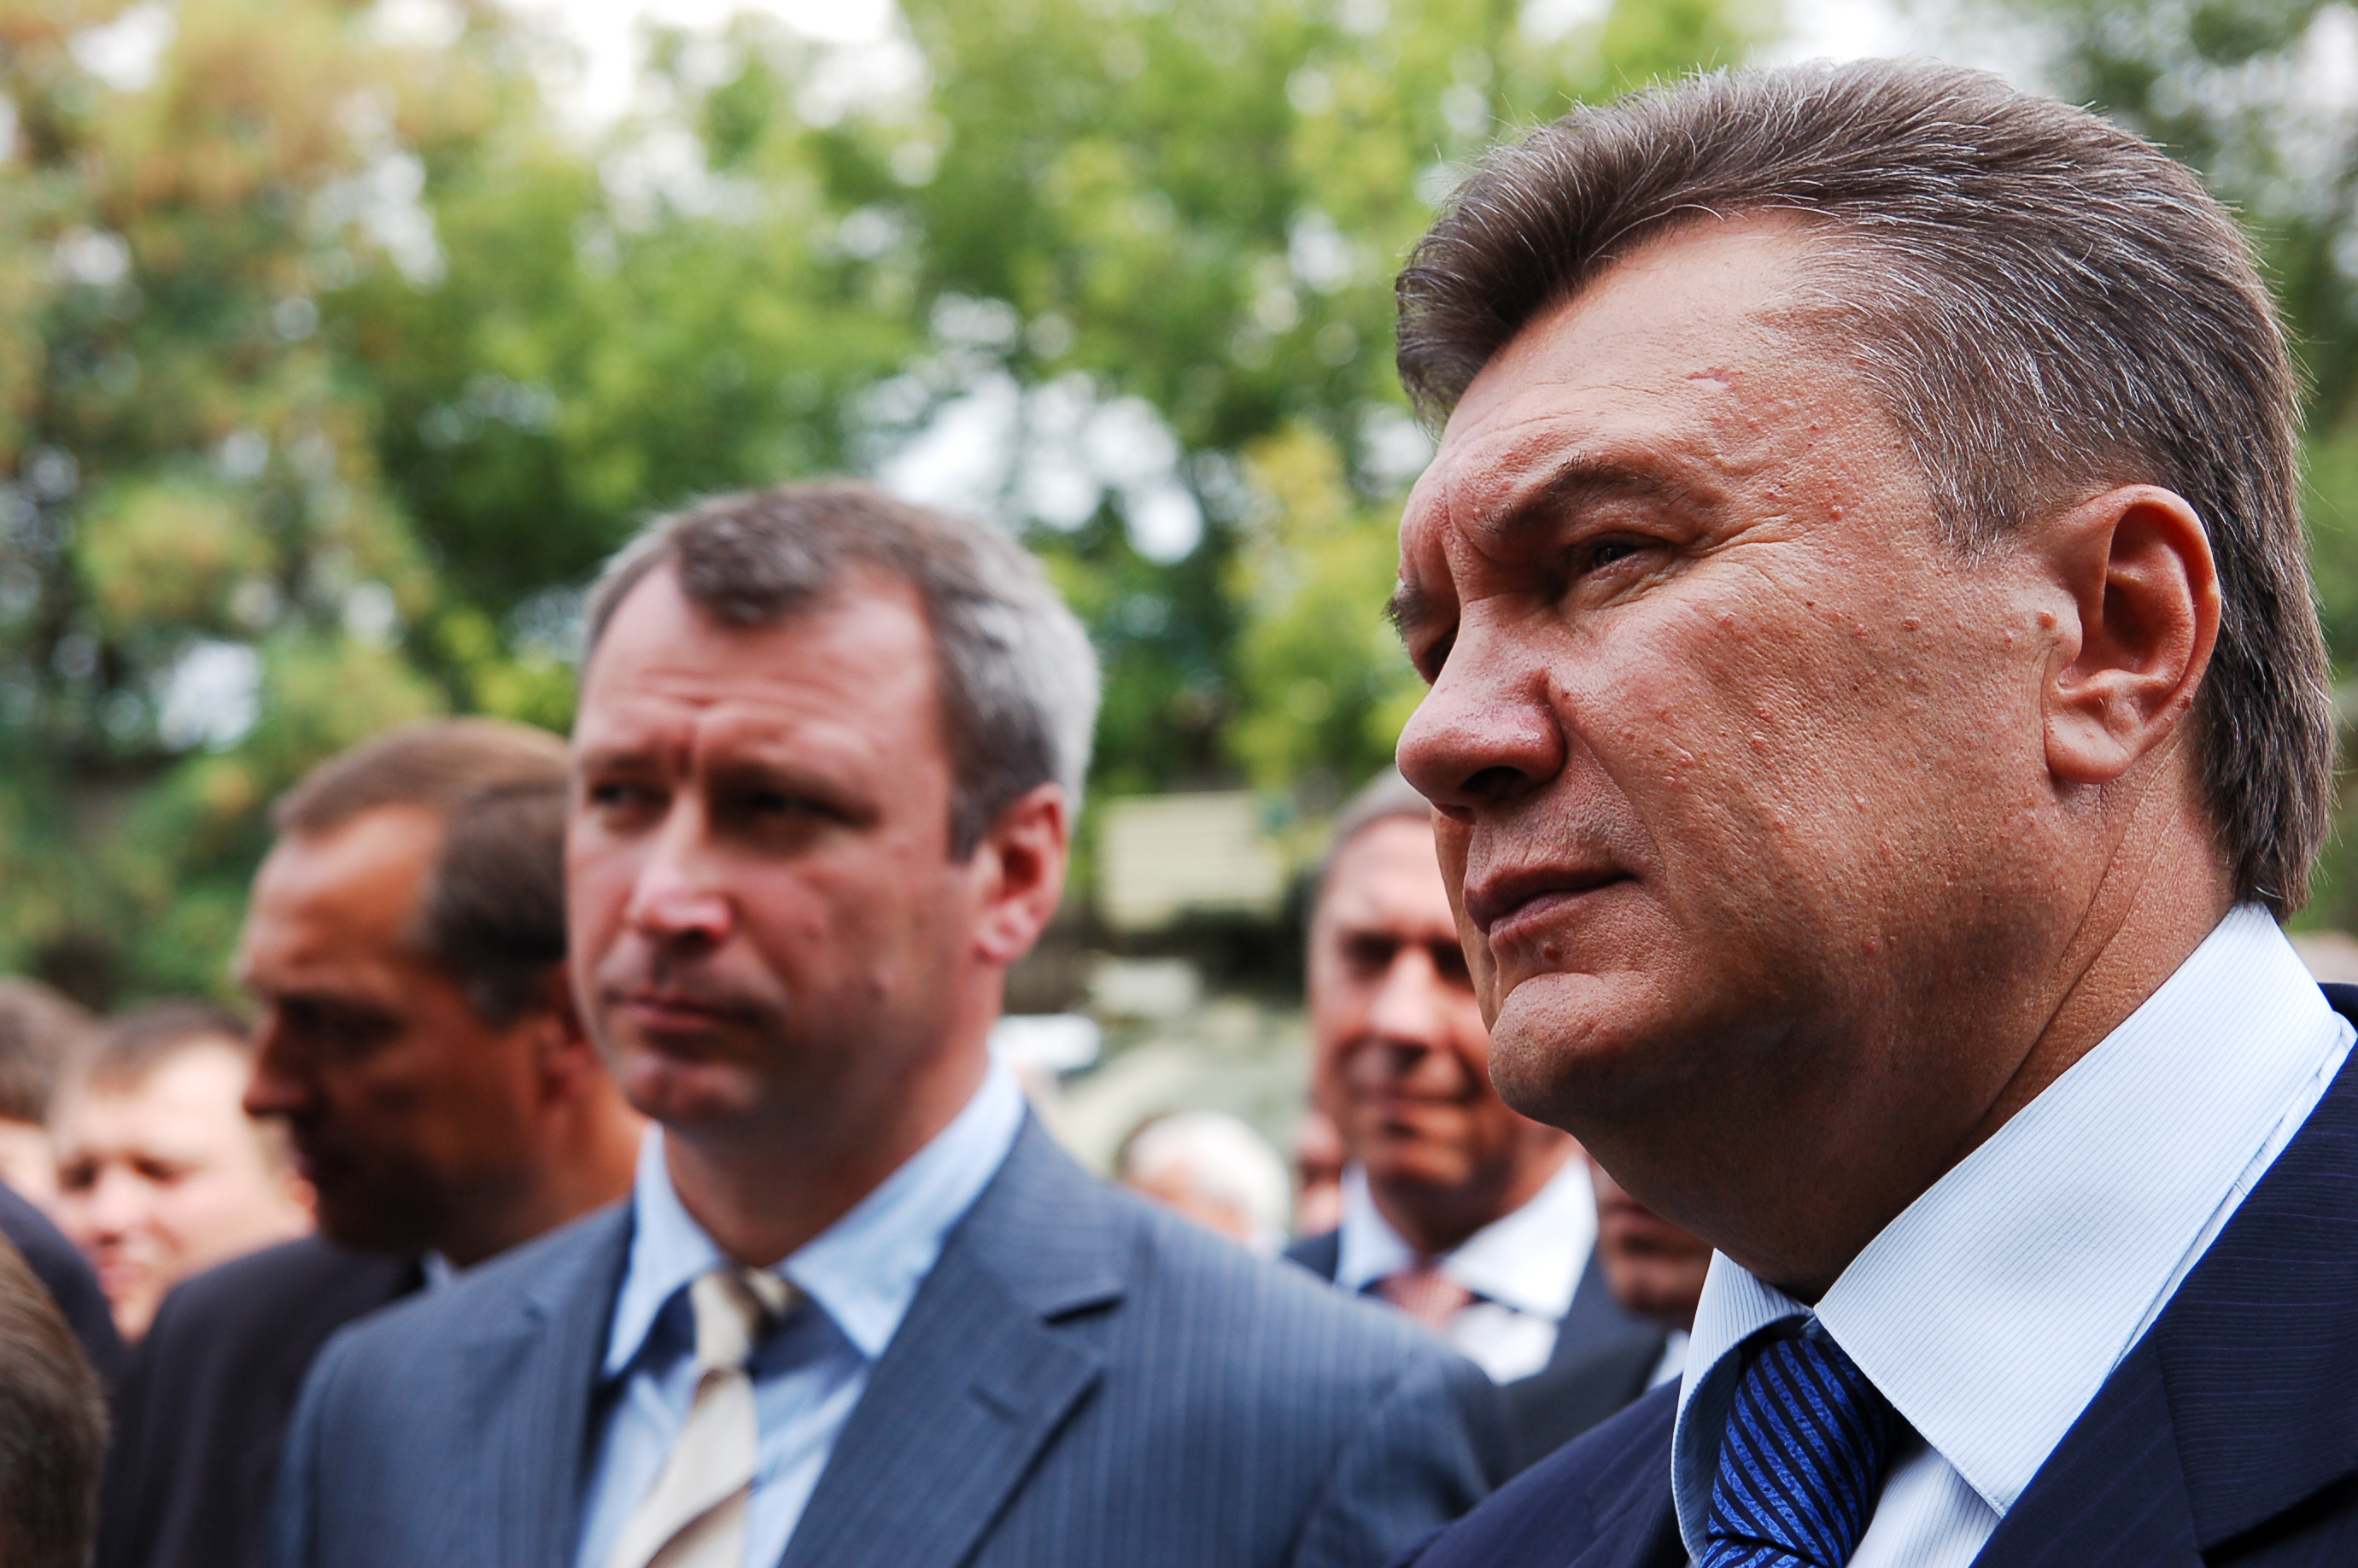 Ukraine court sentences ex-president Yanukovych to 13 years in prison for treason